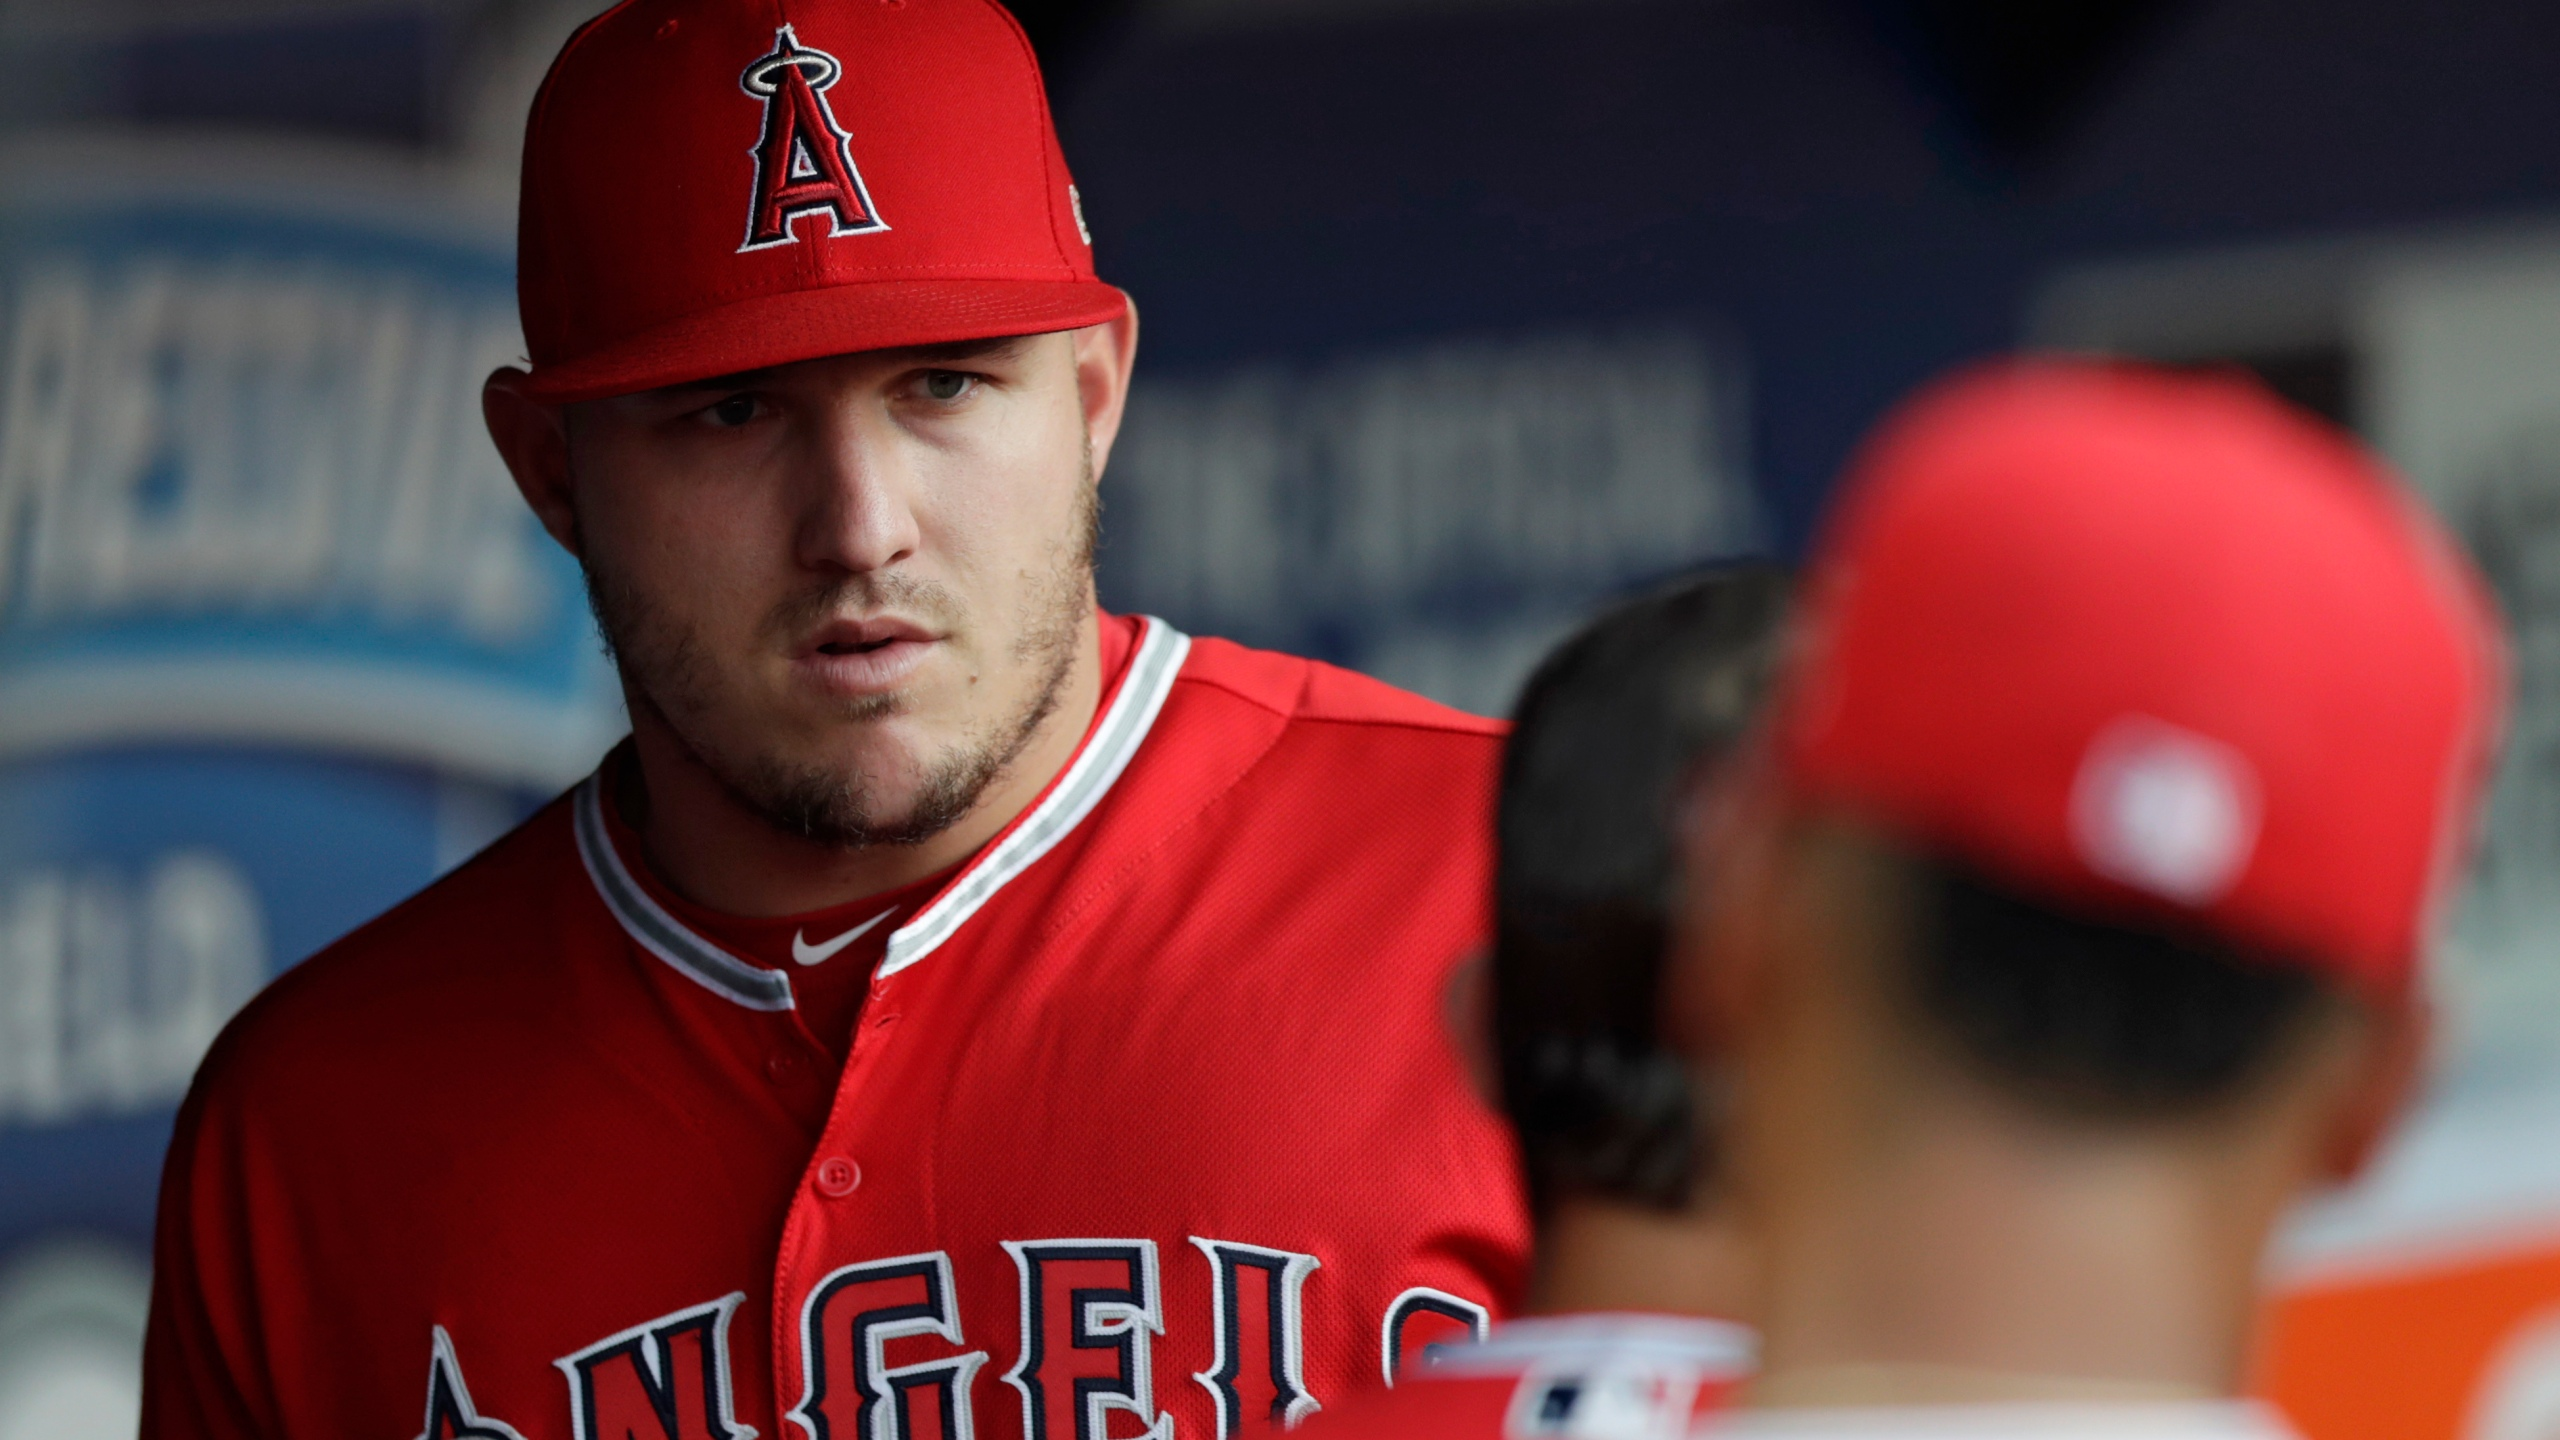 Angels_Trout_Baseball_23479-159532.jpg17355683